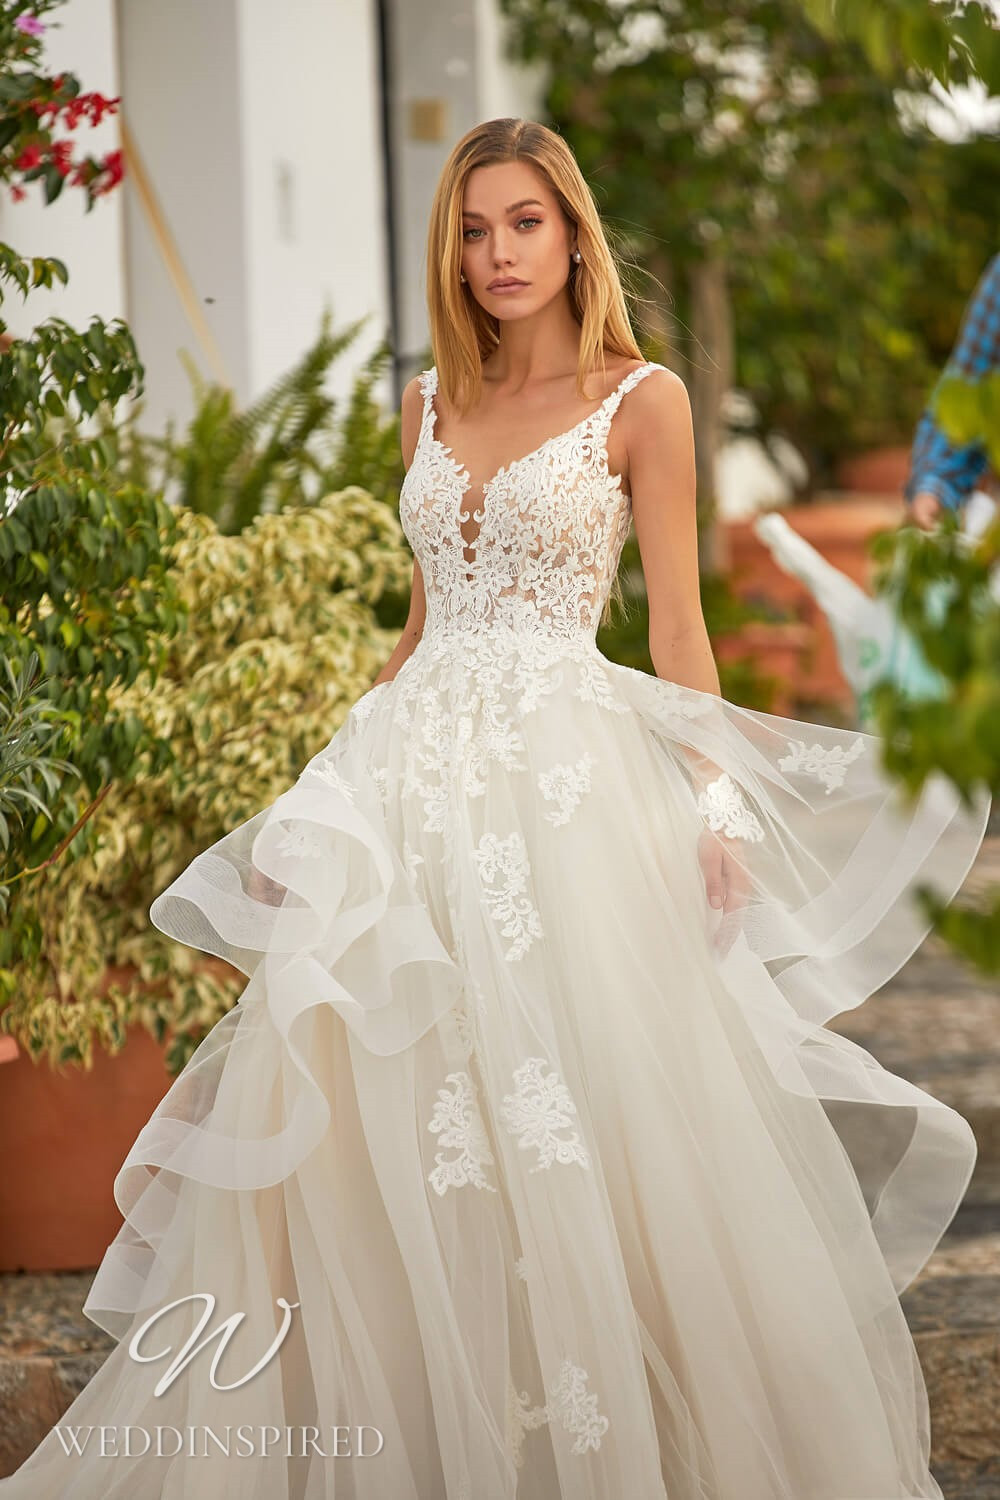 An Essential by Lussano 2021 lace and tulle princess wedding dress with a ruffle skirt